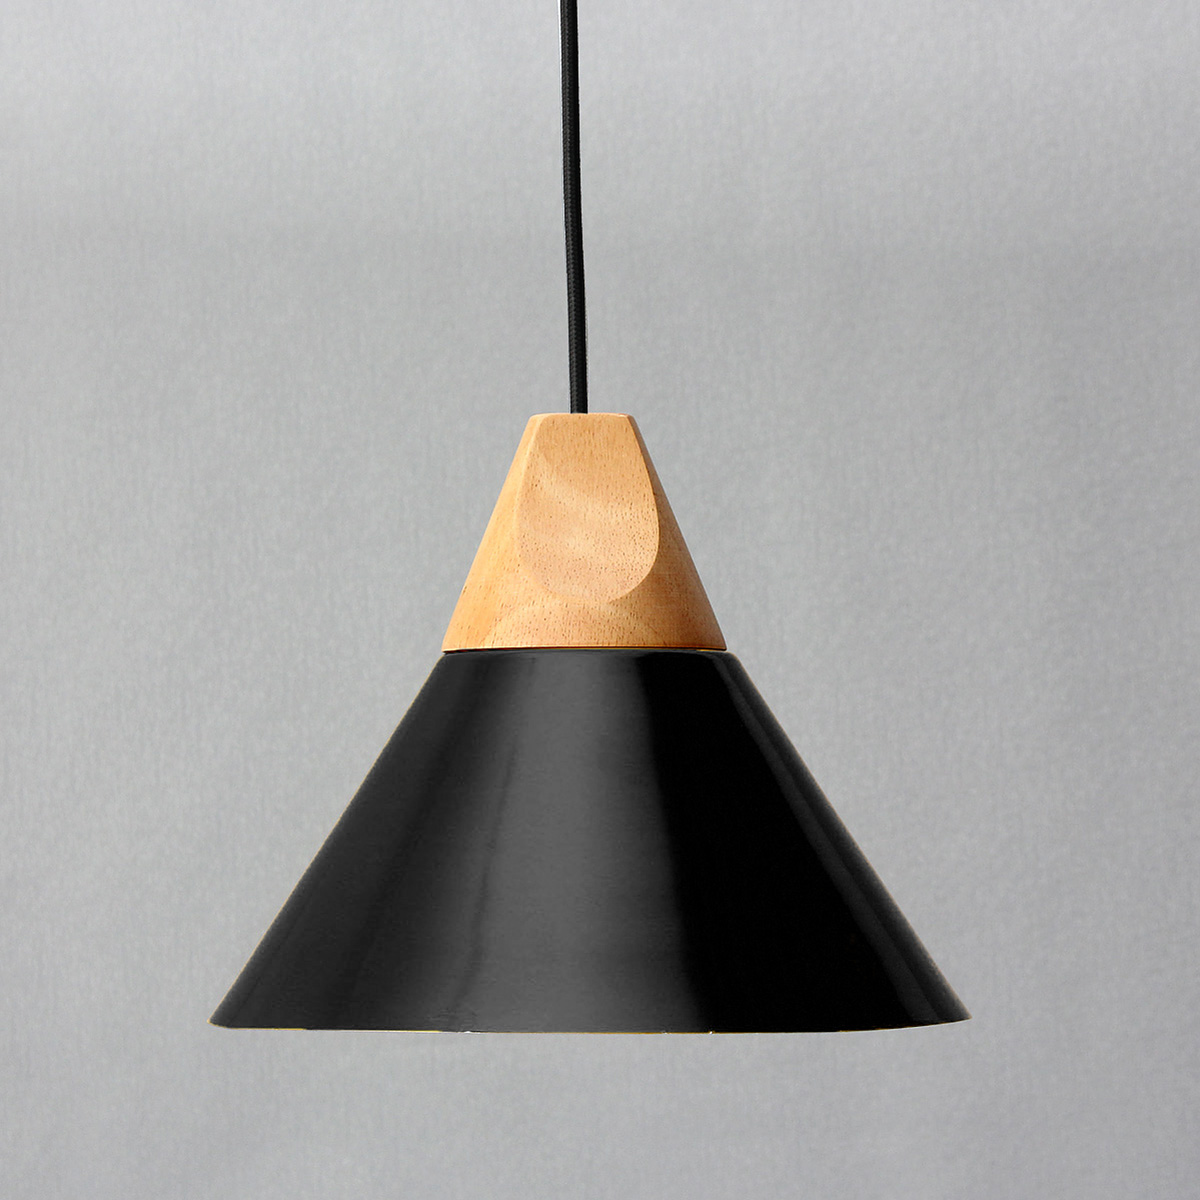 Wooden Lighting Pendants Diameter 25cm Modern Wooden Pendant Ceiling Hanging Lamp